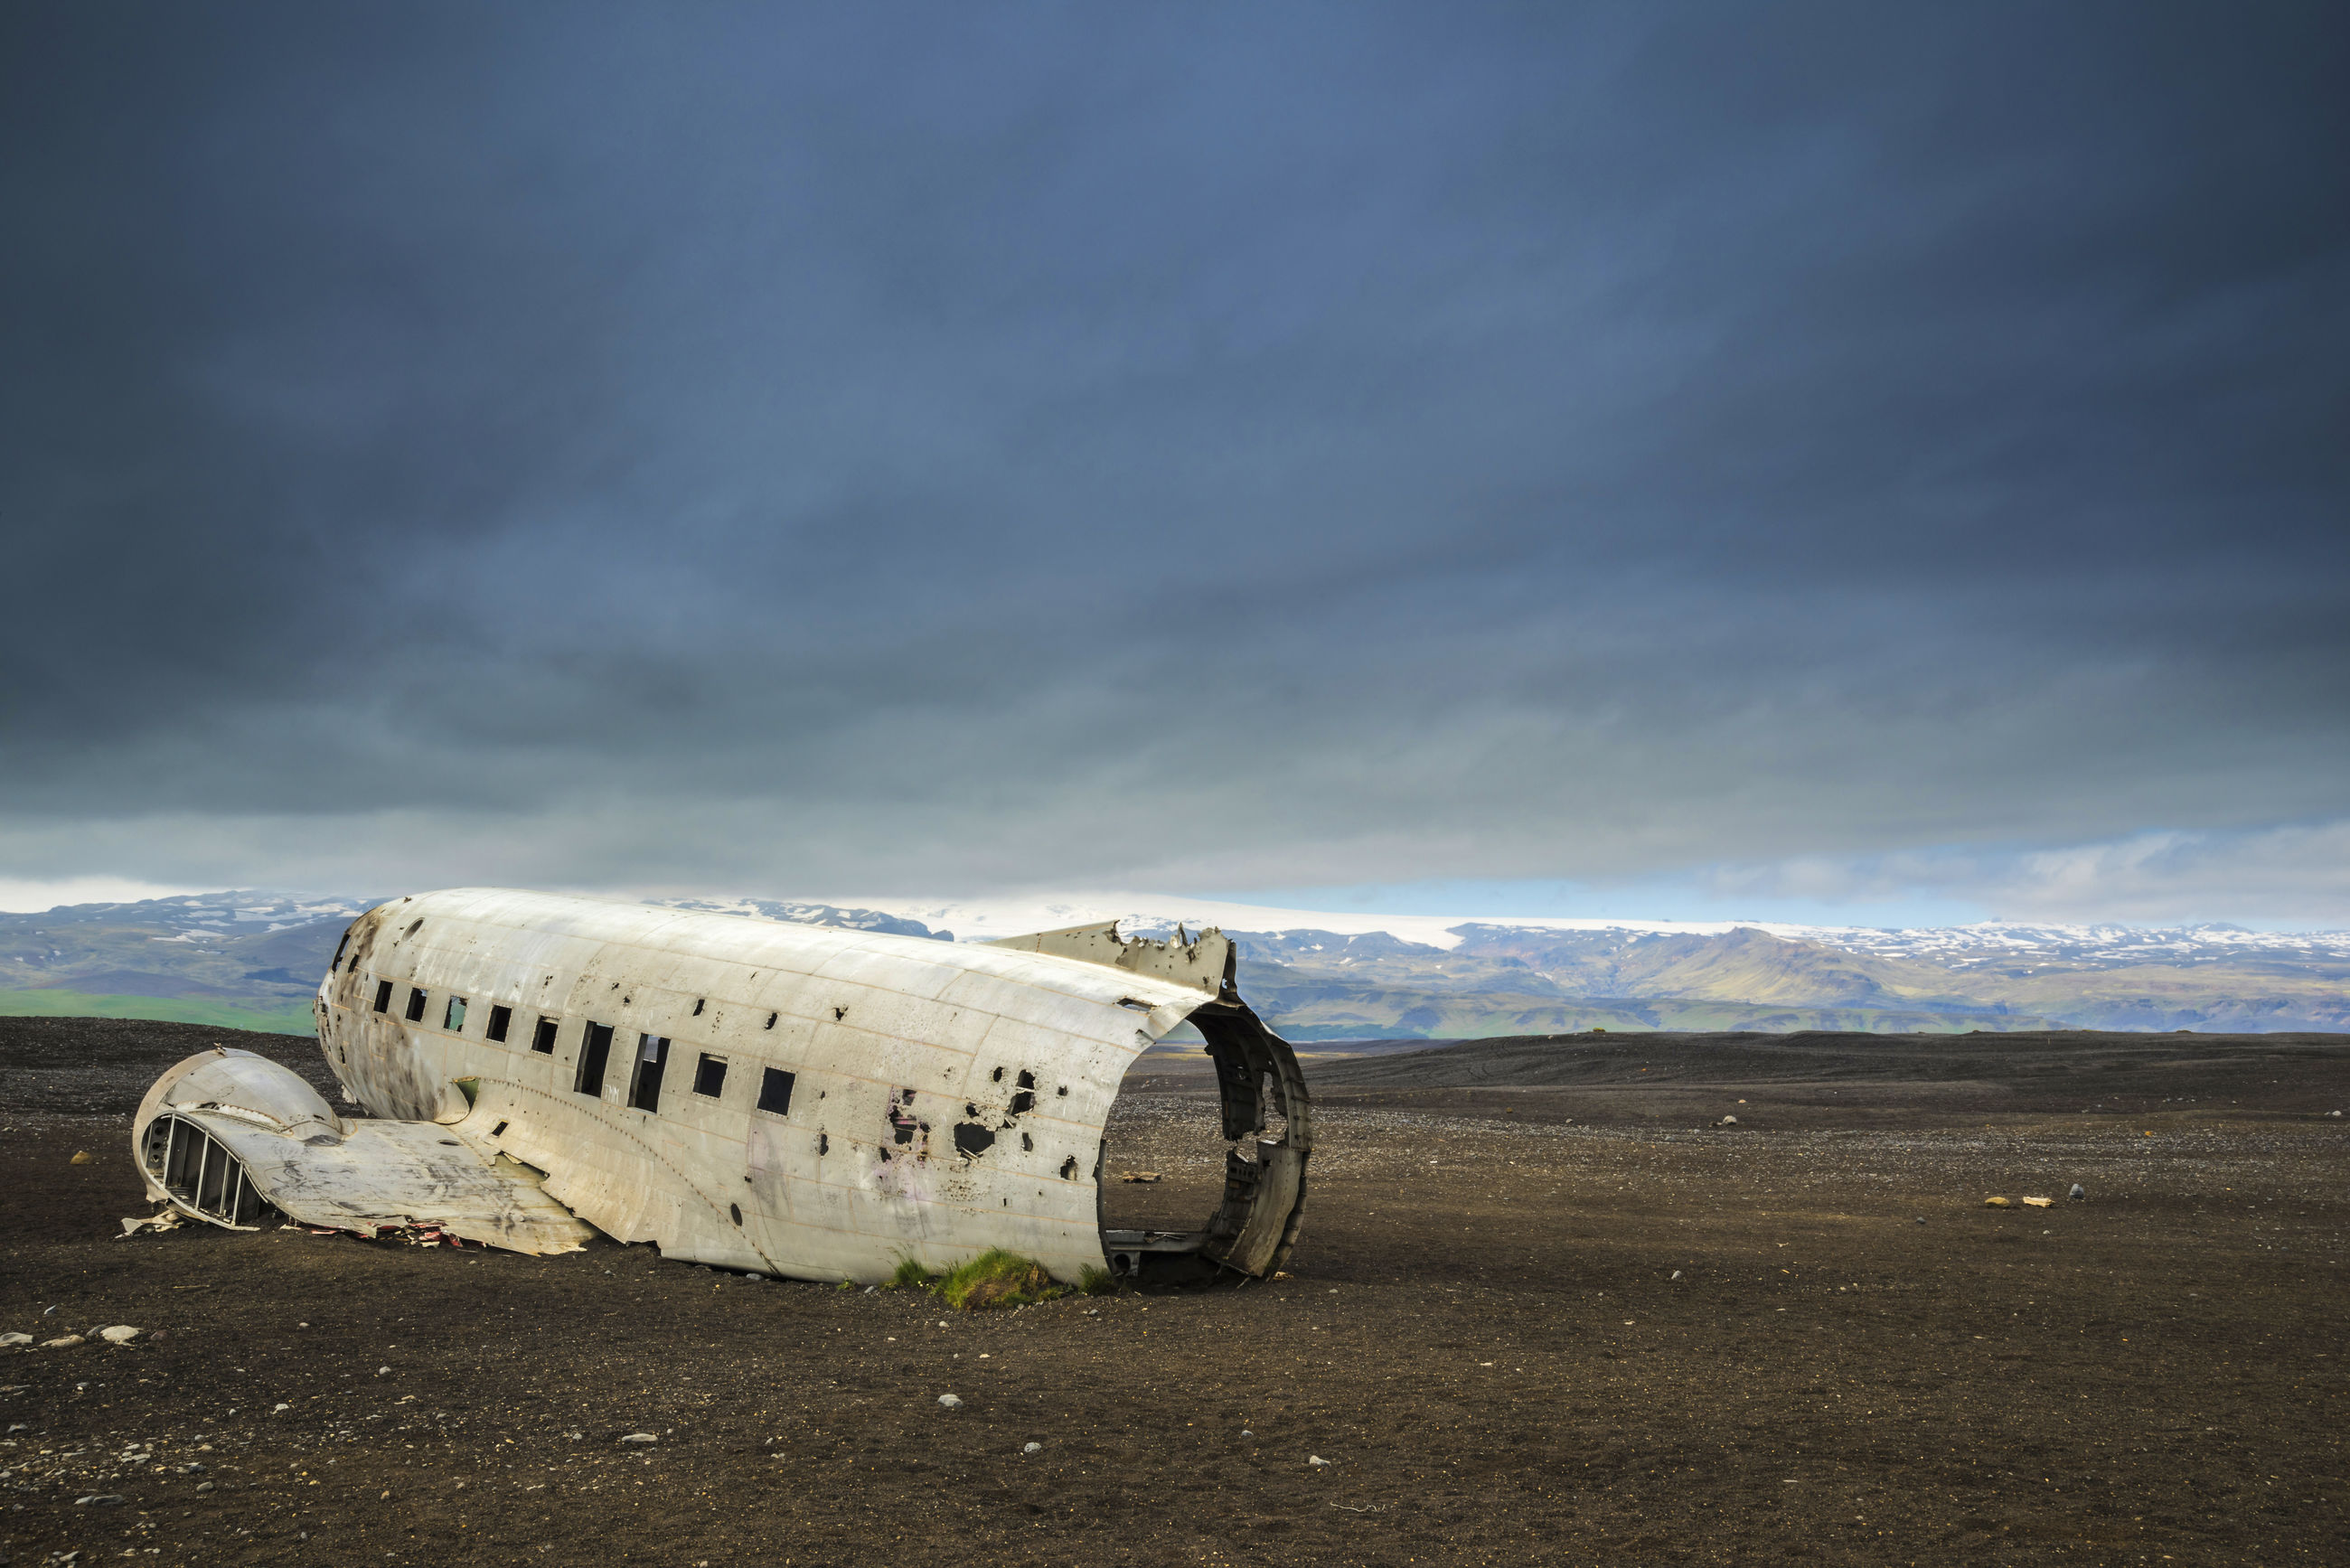 ABANDONED AIRPLANE ON FIELD